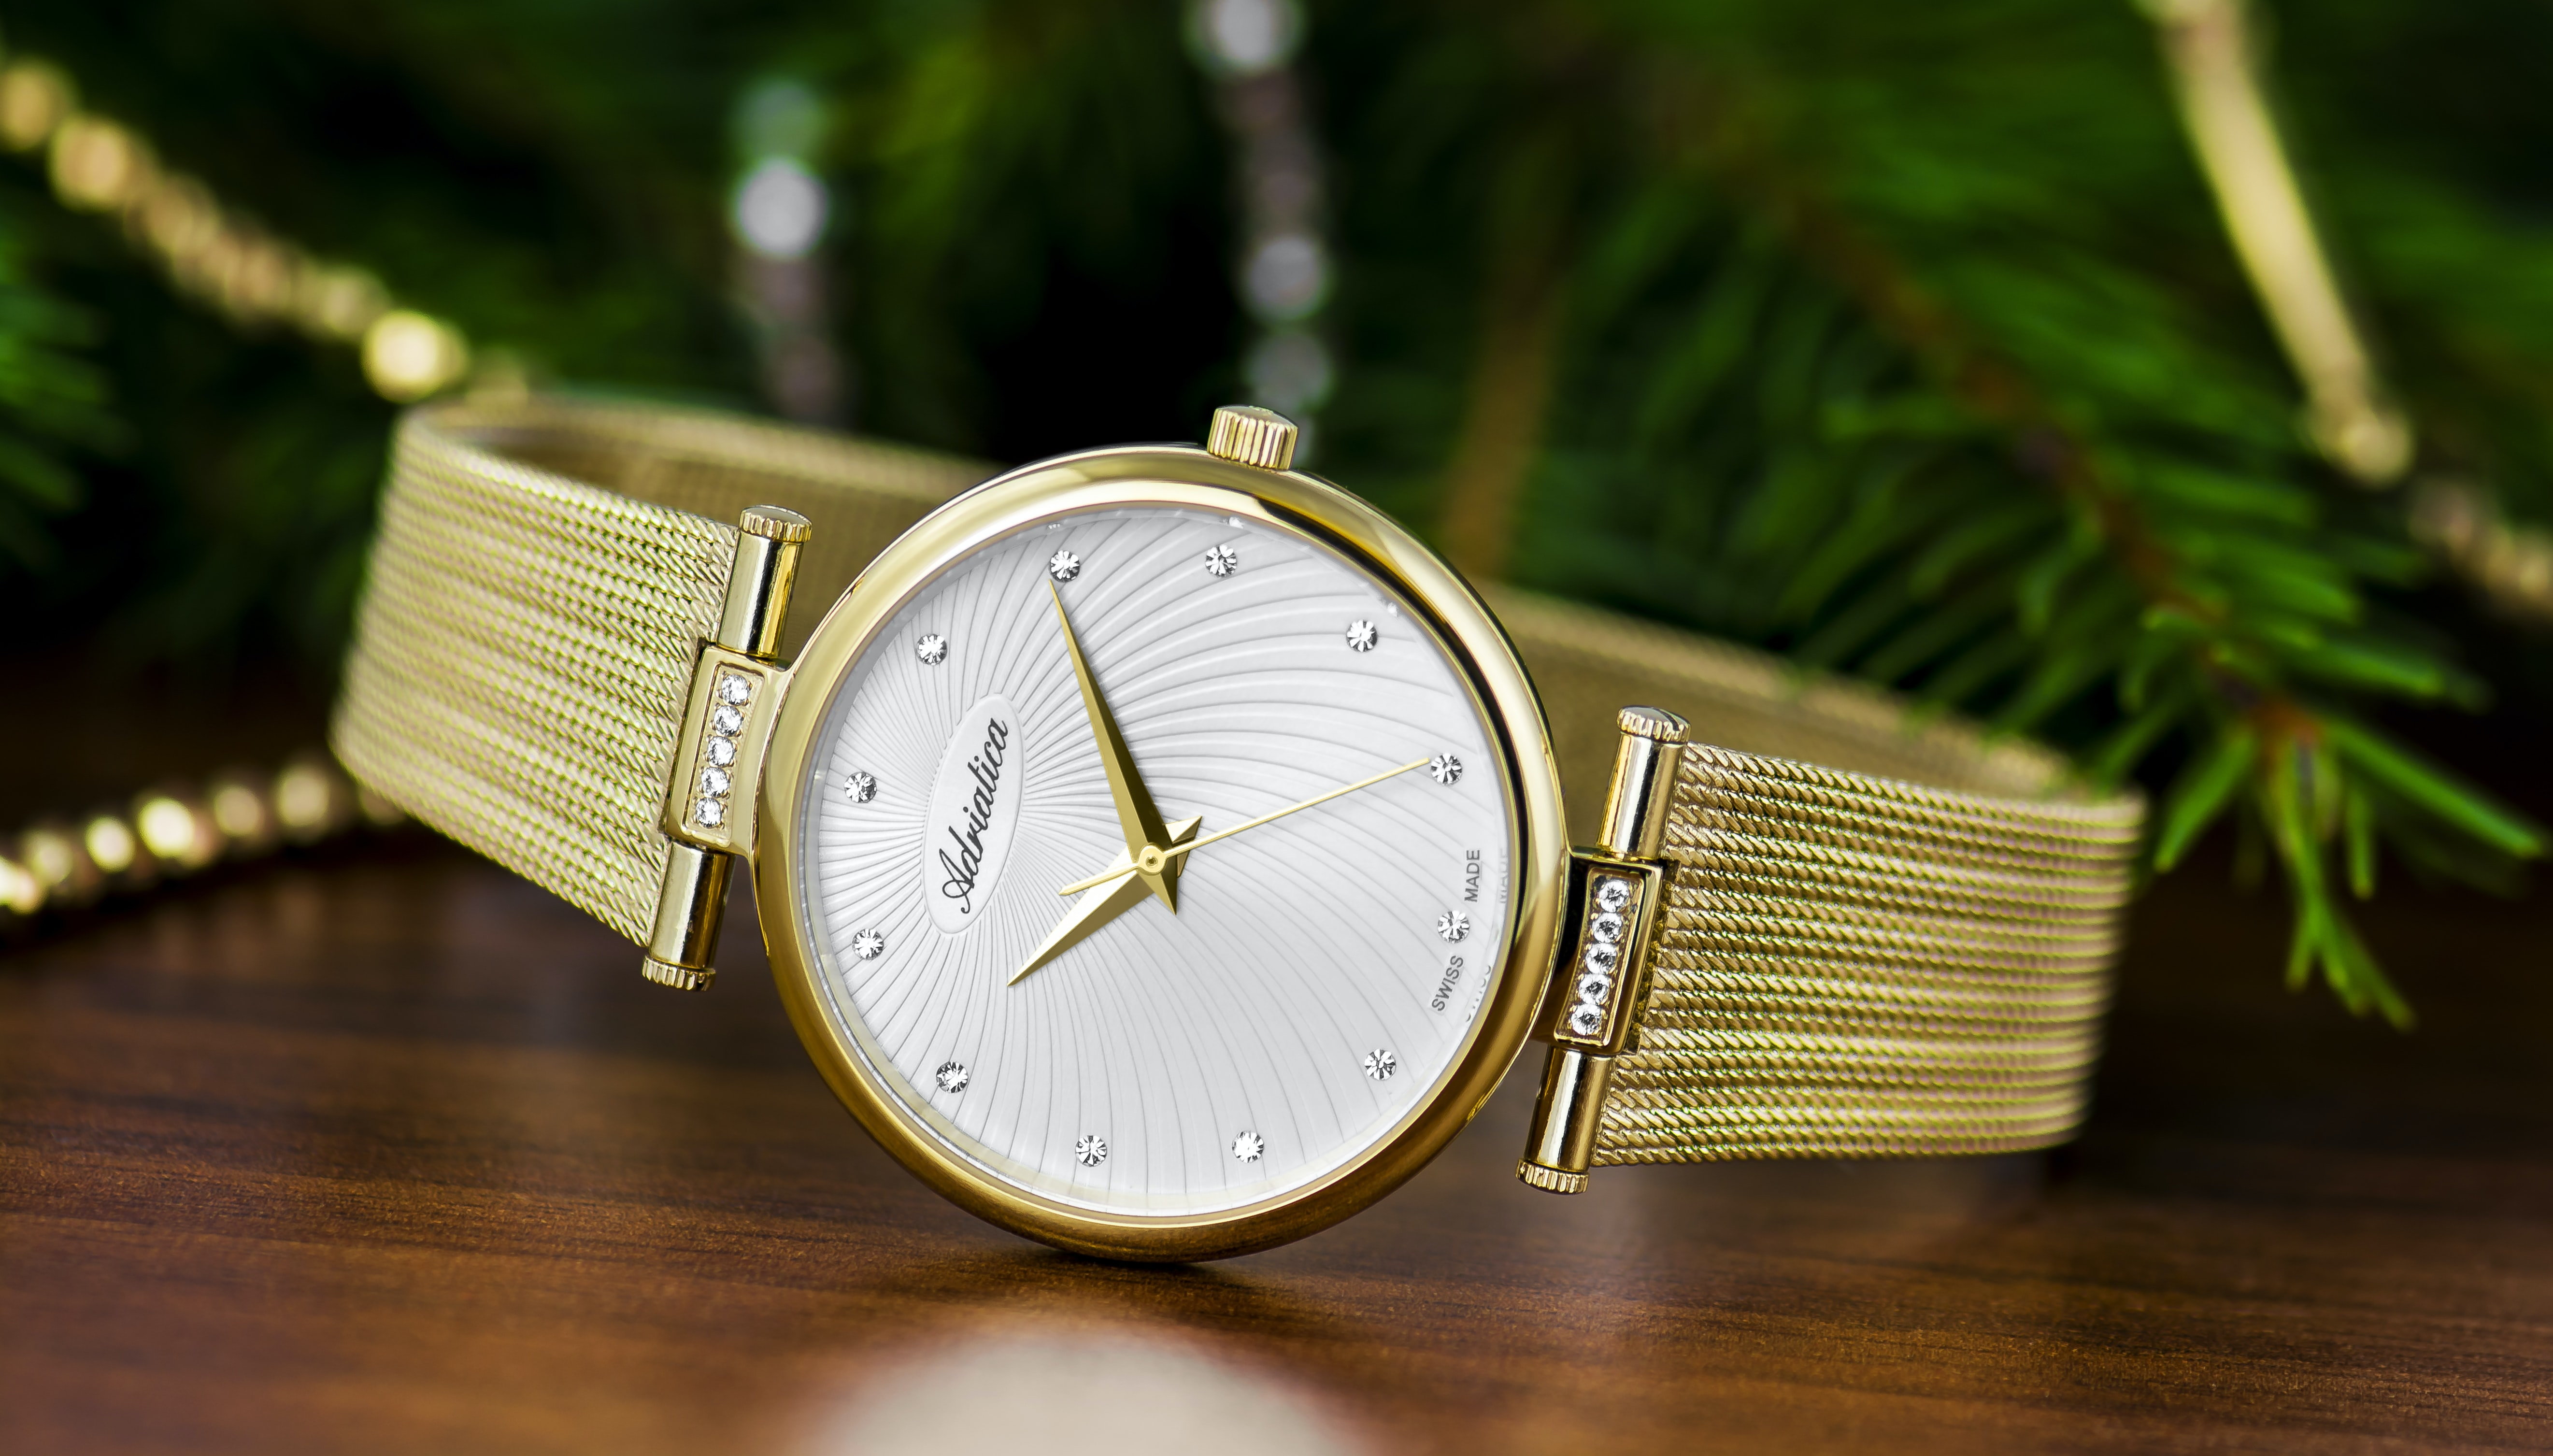 shallow focus photography of round gold-colored analog watch